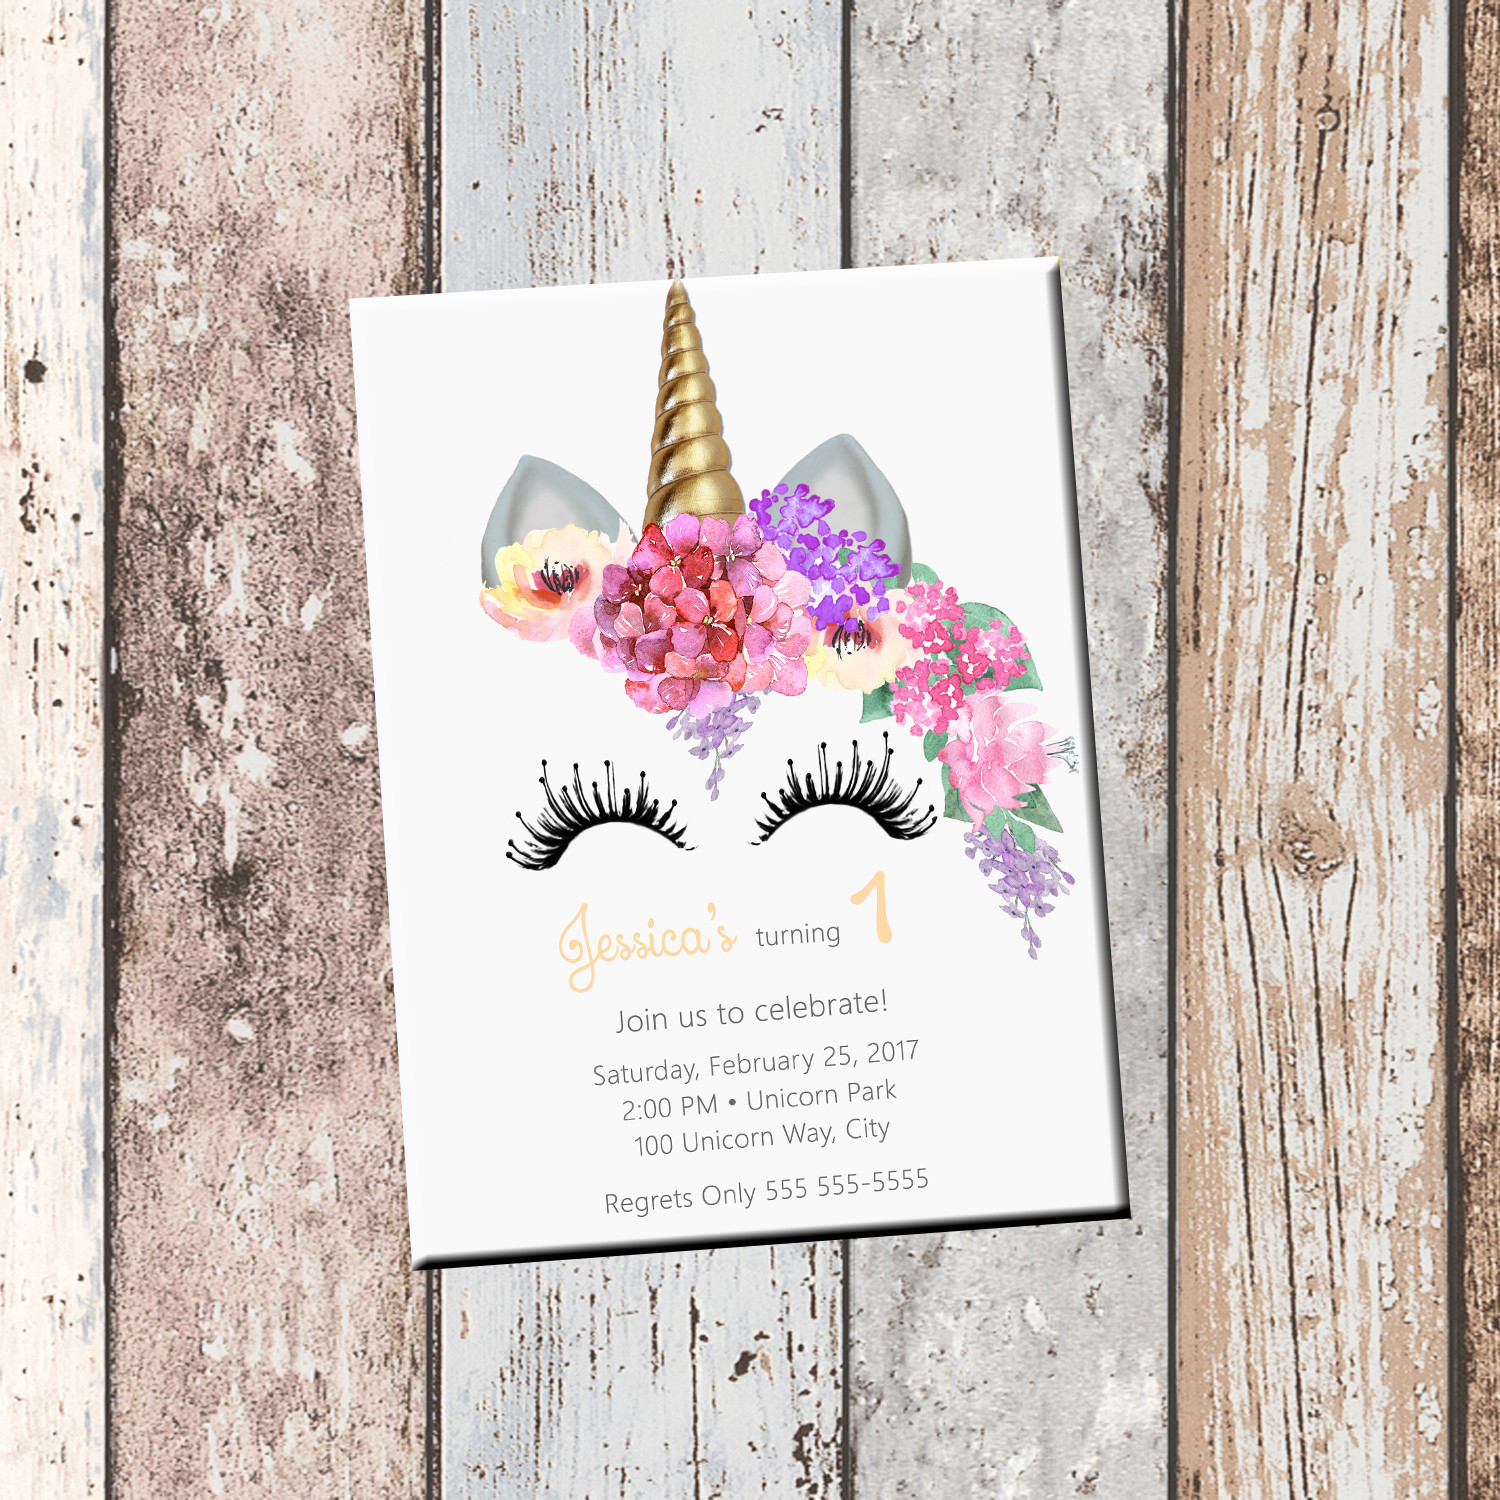 Best ideas about Custom Birthday Party Invitations . Save or Pin Unicorn Birthday Personalized Invitation 1 Sided Birthday Now.